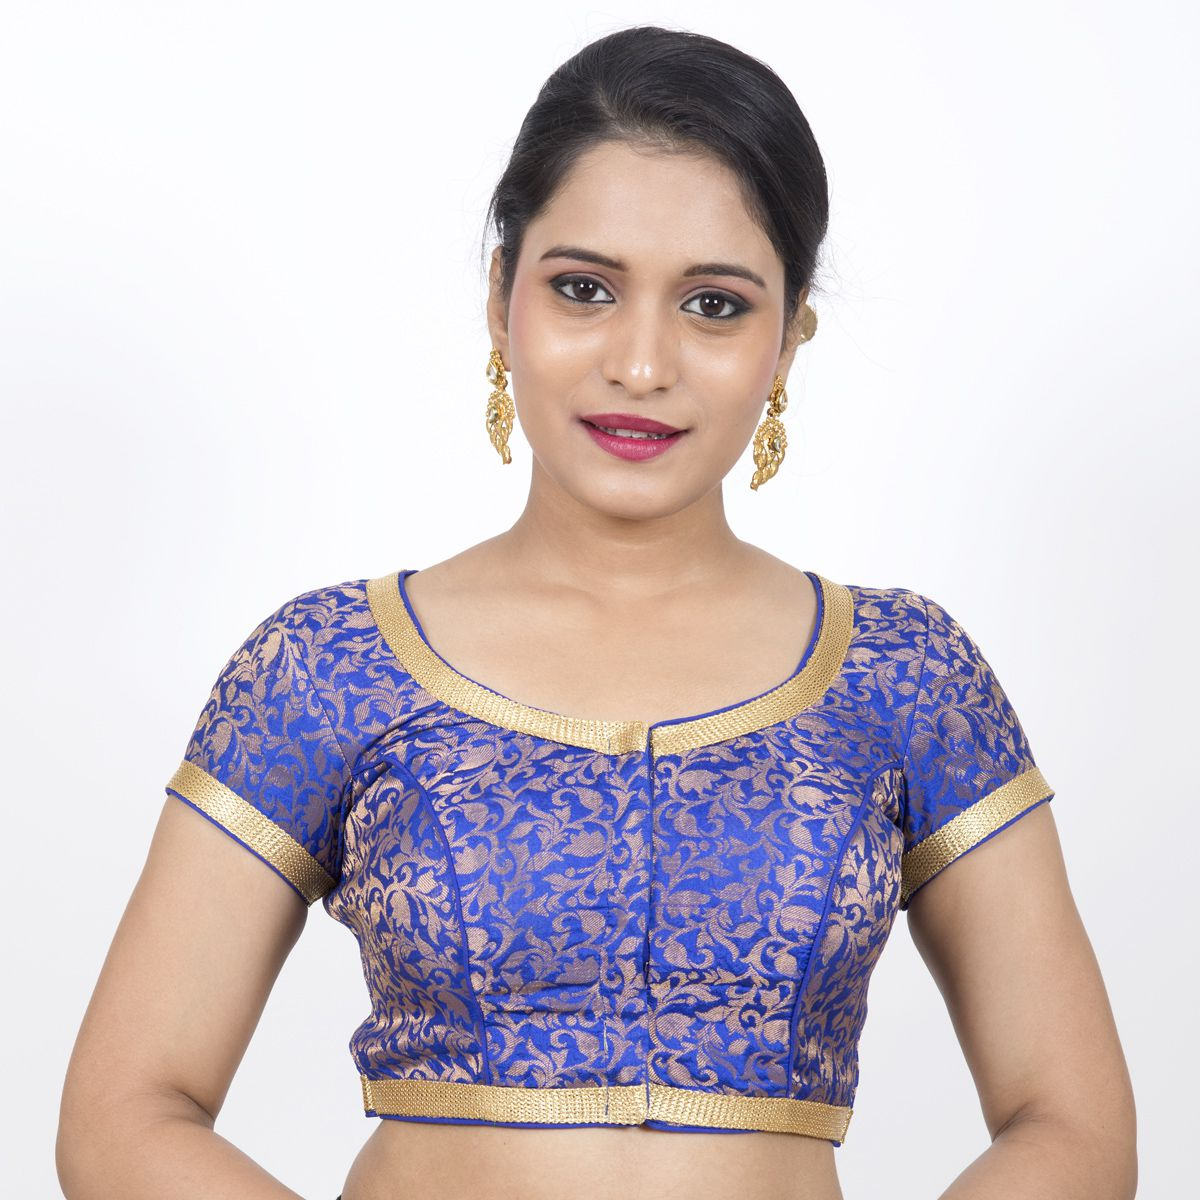 NAMI Blue Brocade Readymade with Pad Blouse